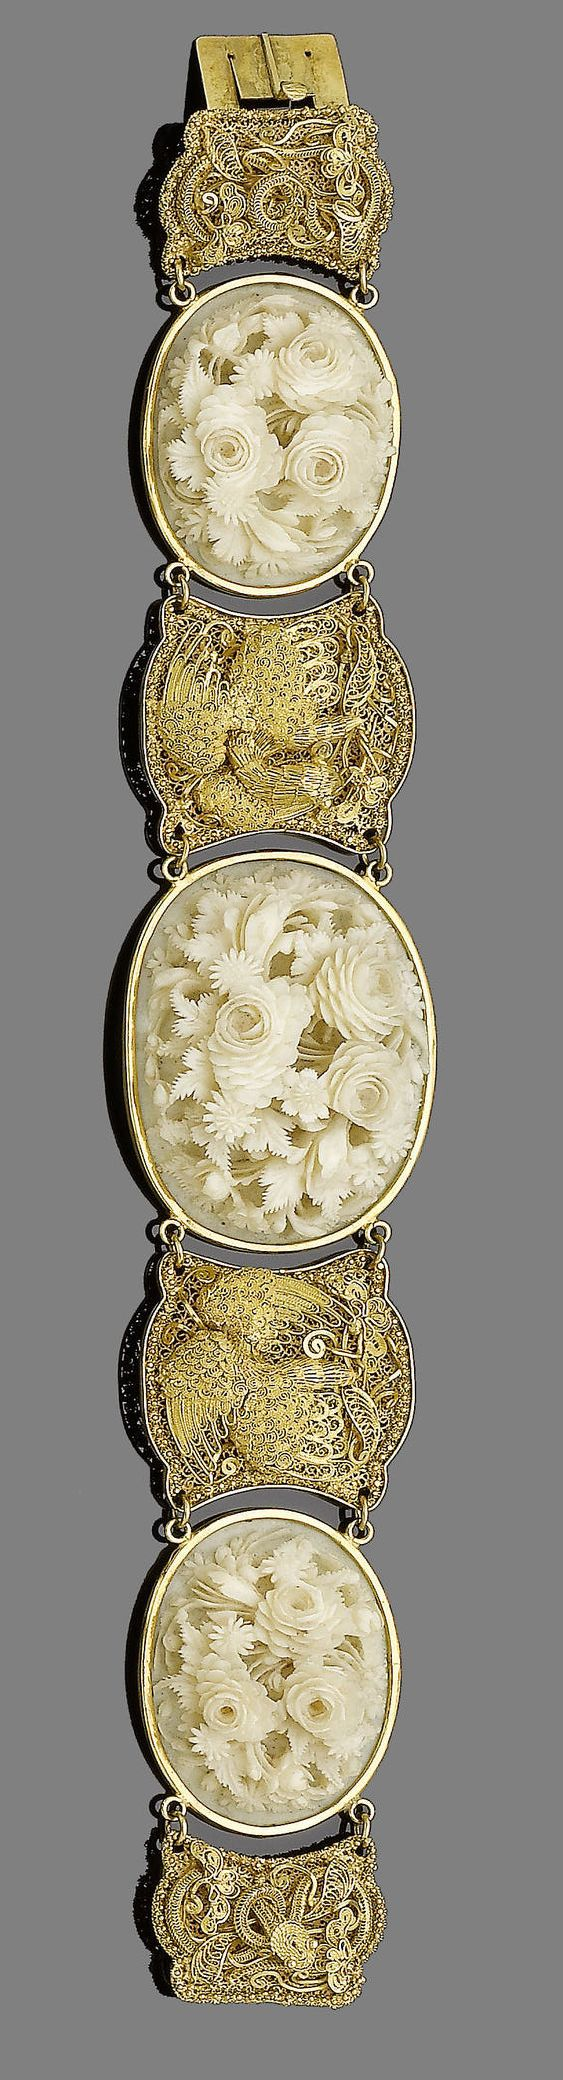 Victorian jewellery: A late 19th century gold and ivory bracelet  Set with three oval ivory plaques, each finely carved in high relief depicting floral bouquets, with graduated gold filigree spacers depicting phoenixes and serpents, Chinese maker's mark, retailer's mark W.W, damage to one filigree plaque, length 18.2cm, later fitted ivory case